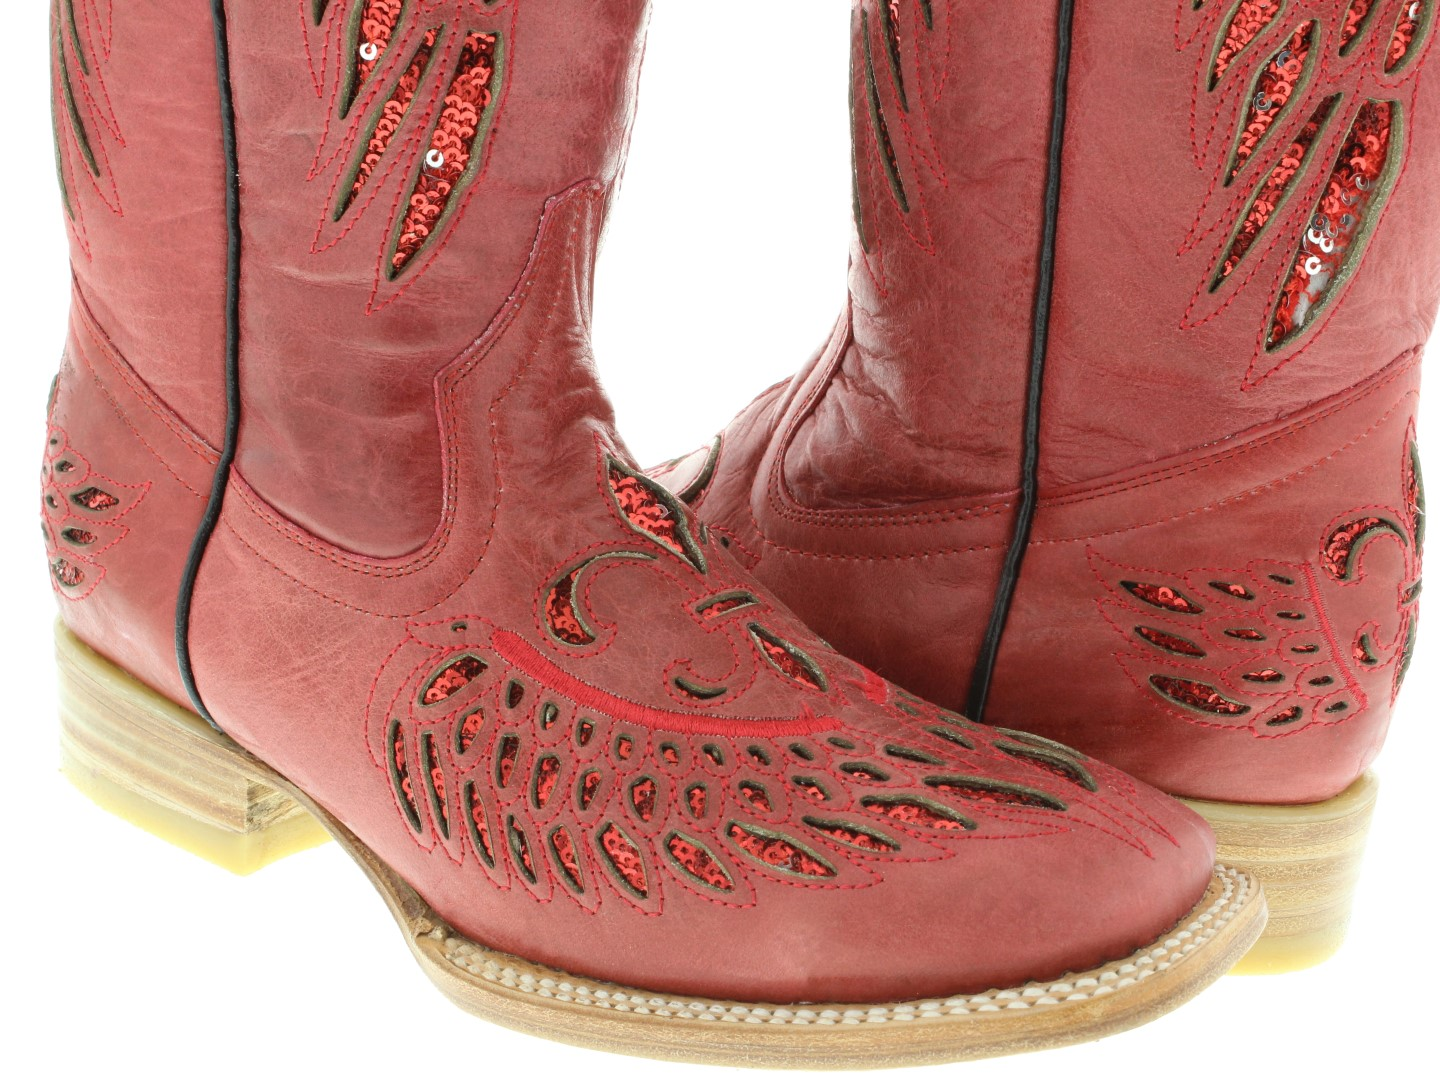 6bd76c9d537 Womens Red Flower Wings Sequins Leather Wear Cowgirl Boots Square ...